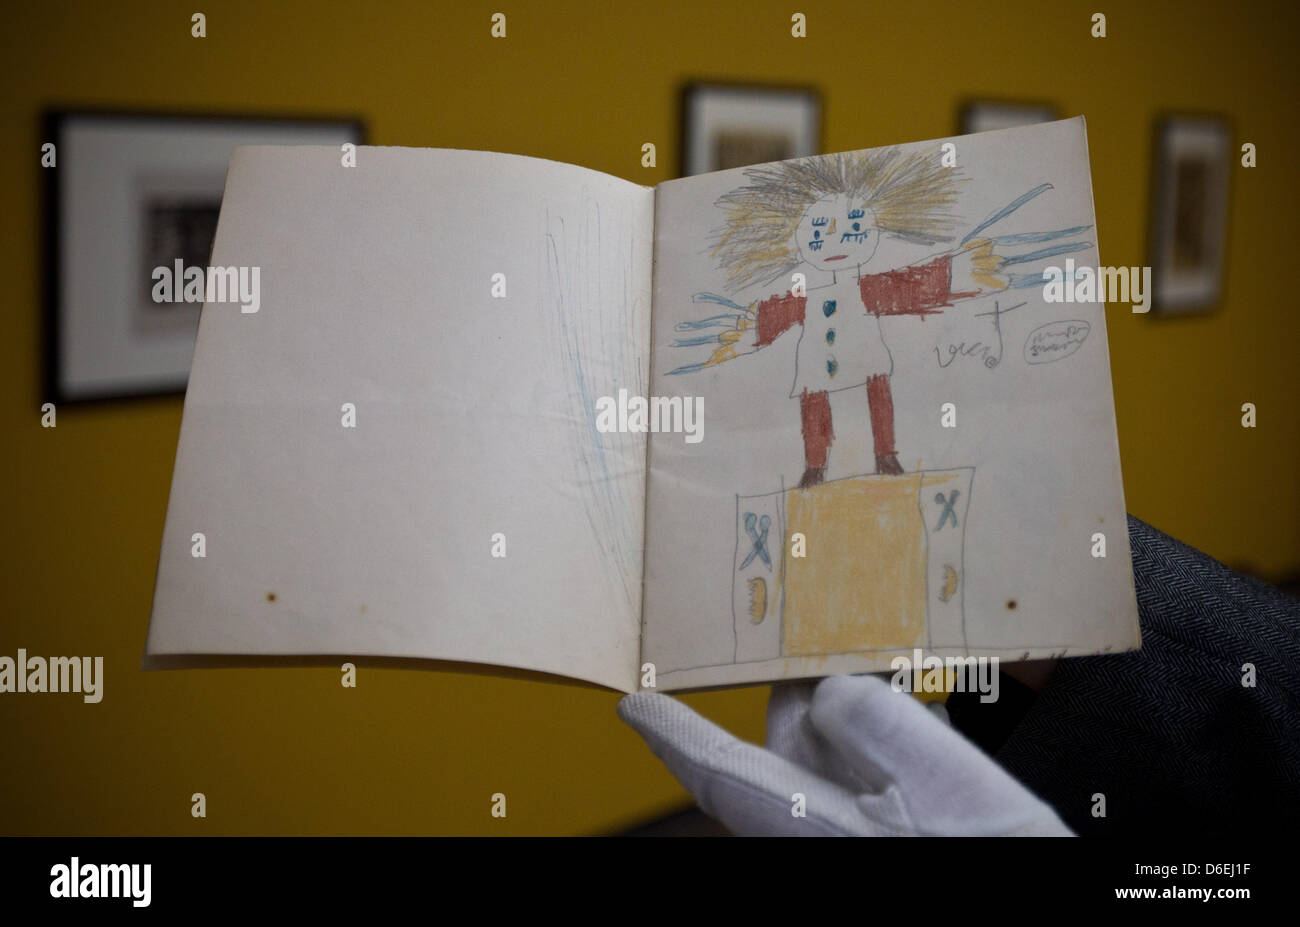 The booklet 'Struwwelpeter' (Slovenly Peter) by artist Ernst Ludwig Kirchner is pictured at the exhibition - Stock Image